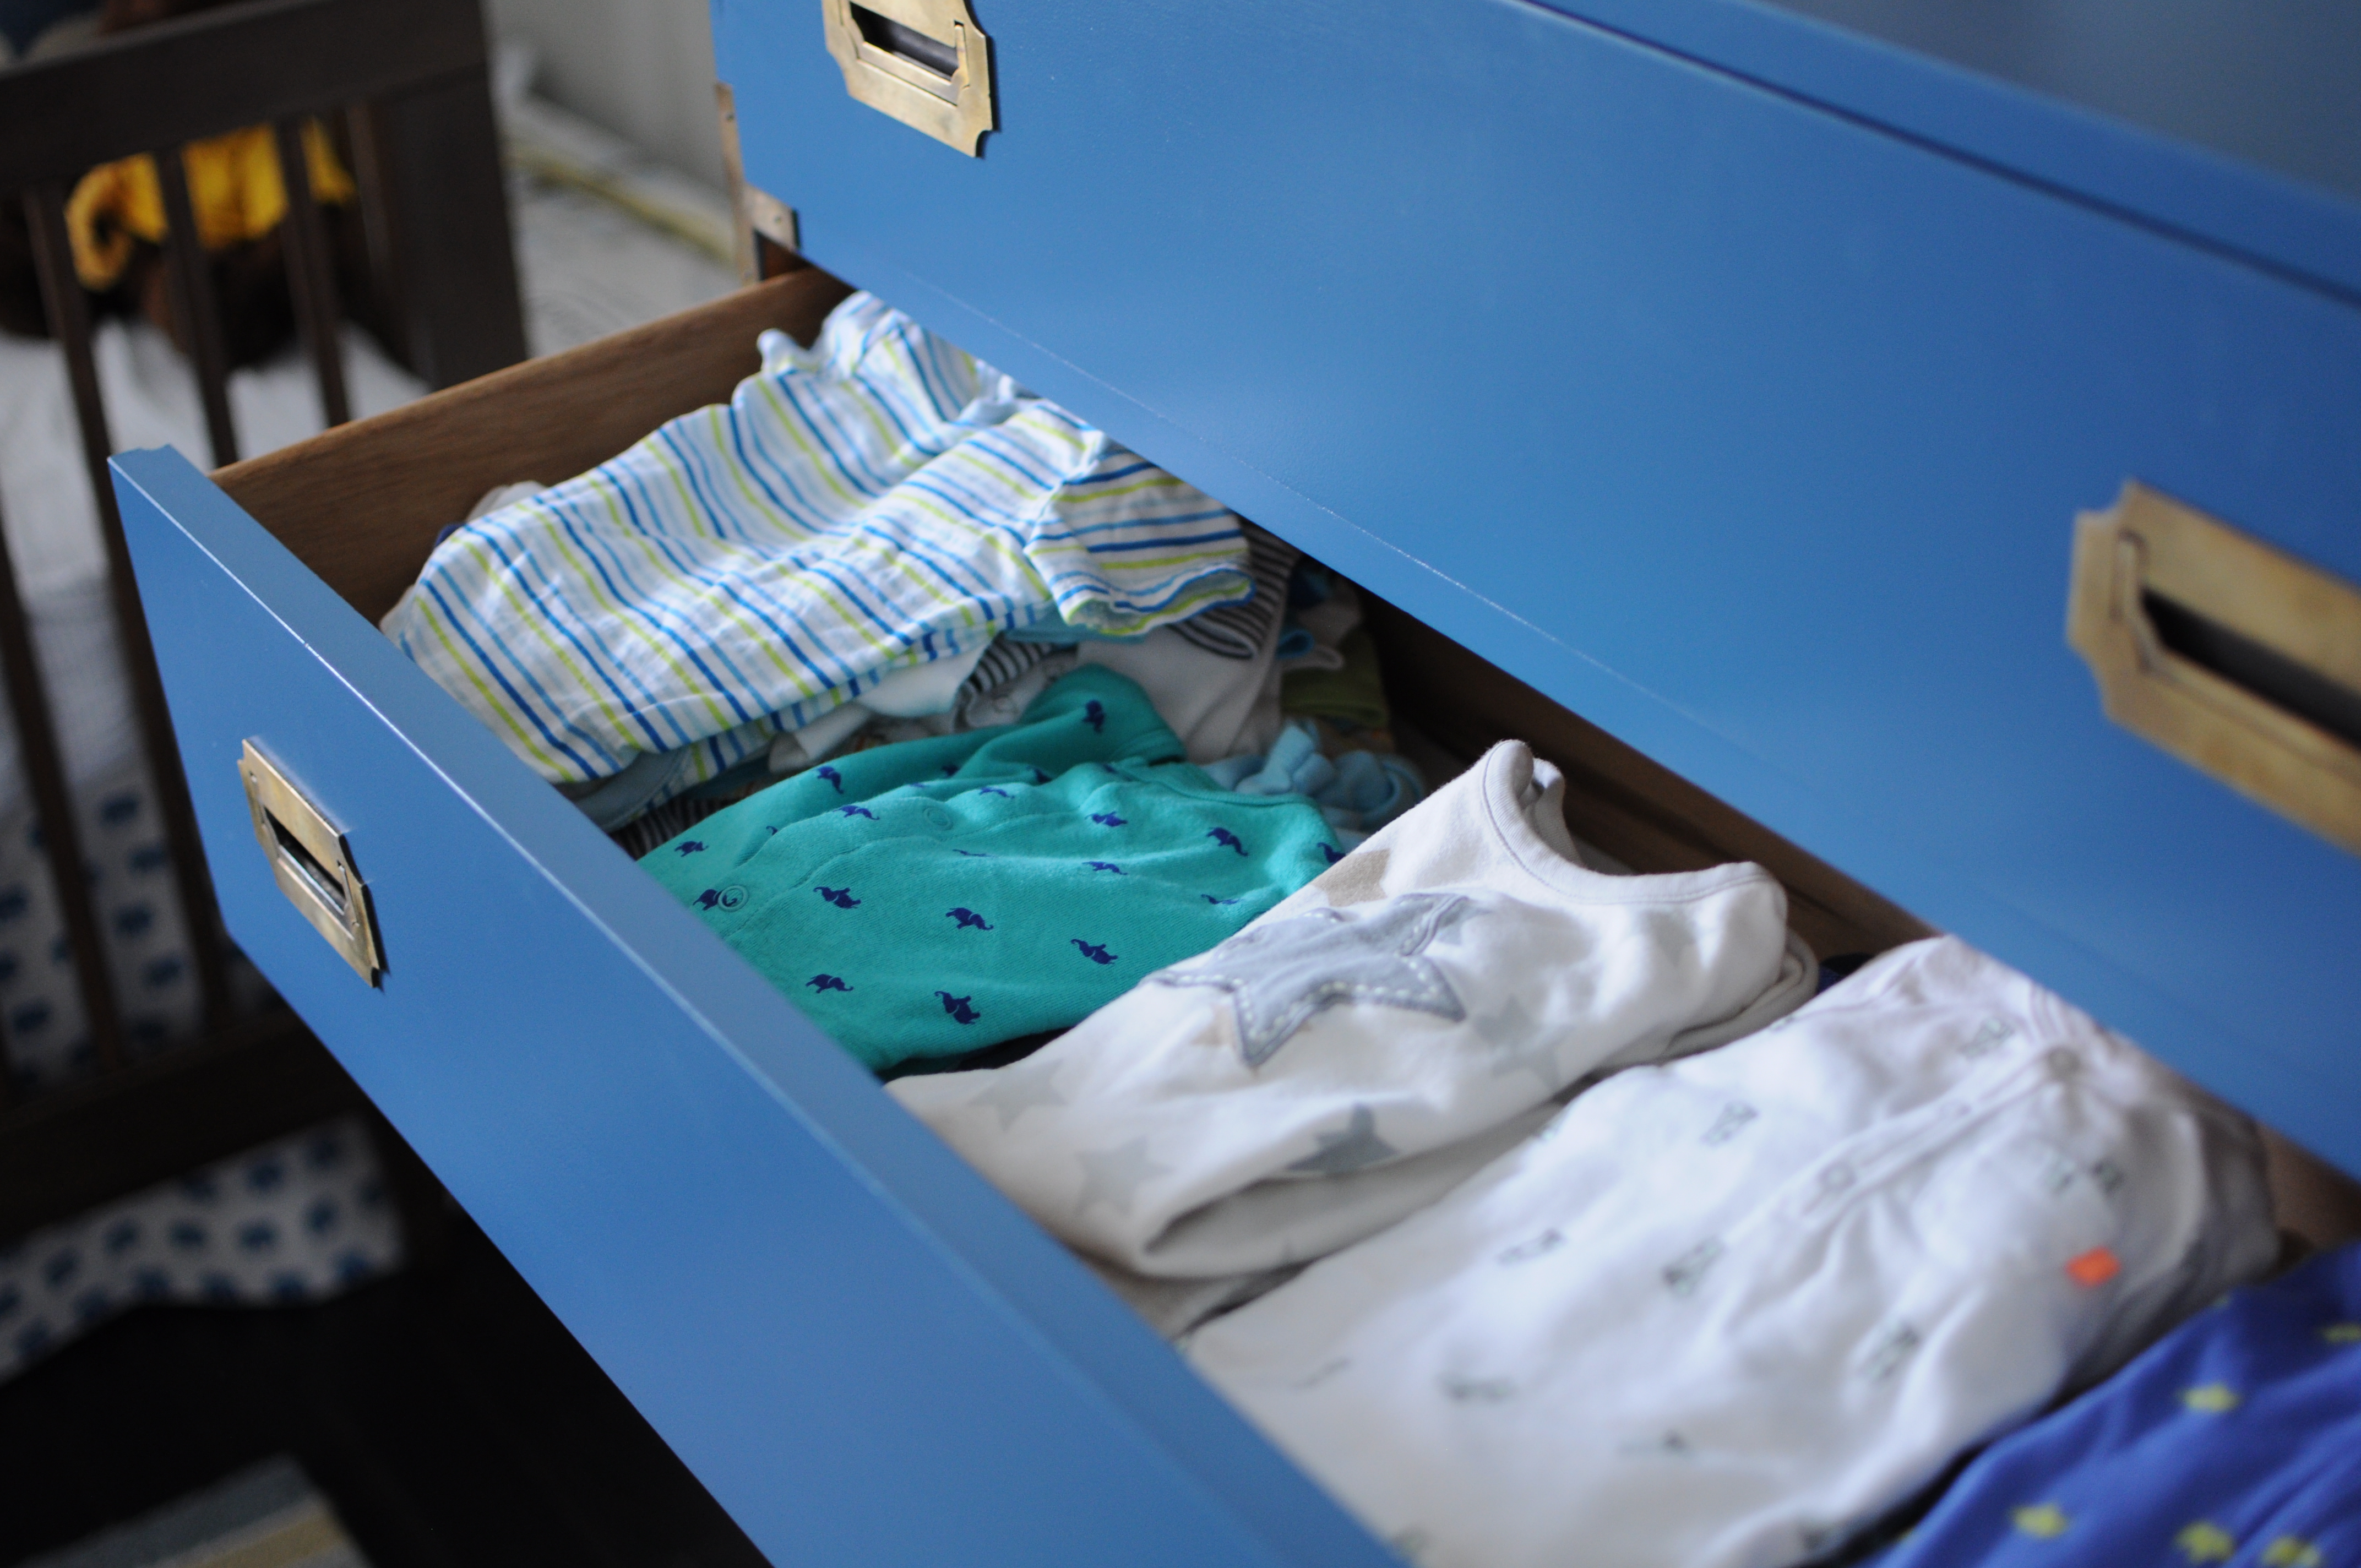 a neatly packed blue dresser